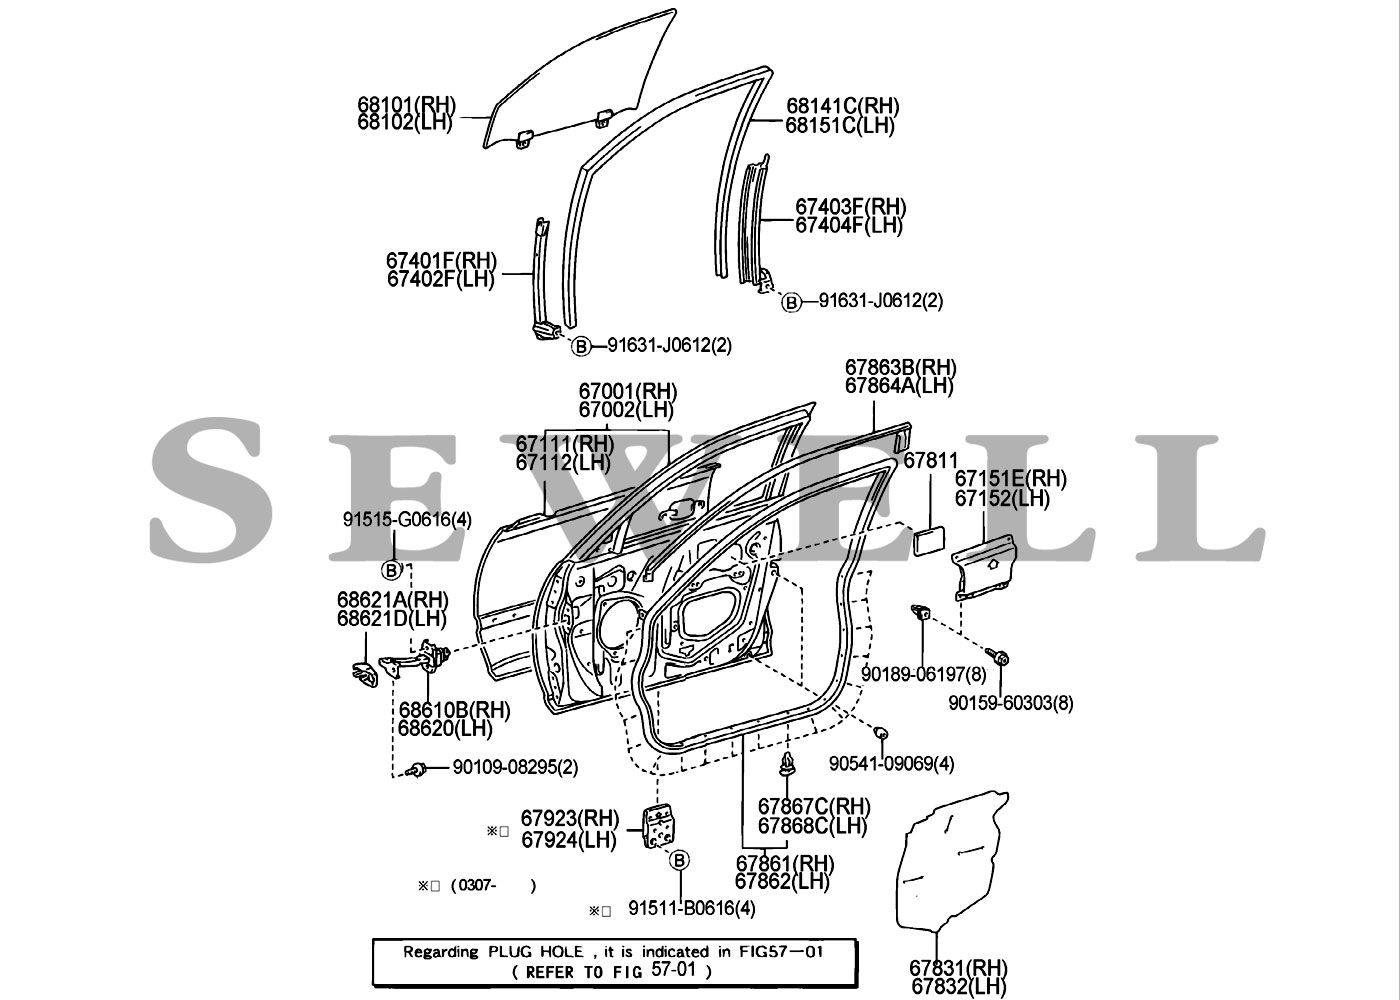 Discussion D571 ds660253 likewise Discussion T15993 ds684680 also 1992 Lexus Ls400 4 0l Serpentine Belt Diagram further 92 Lexus Es300 Engine Diagram together with O2 Sensor Delete Lexus Wiring Diagram. on lexus ls 300